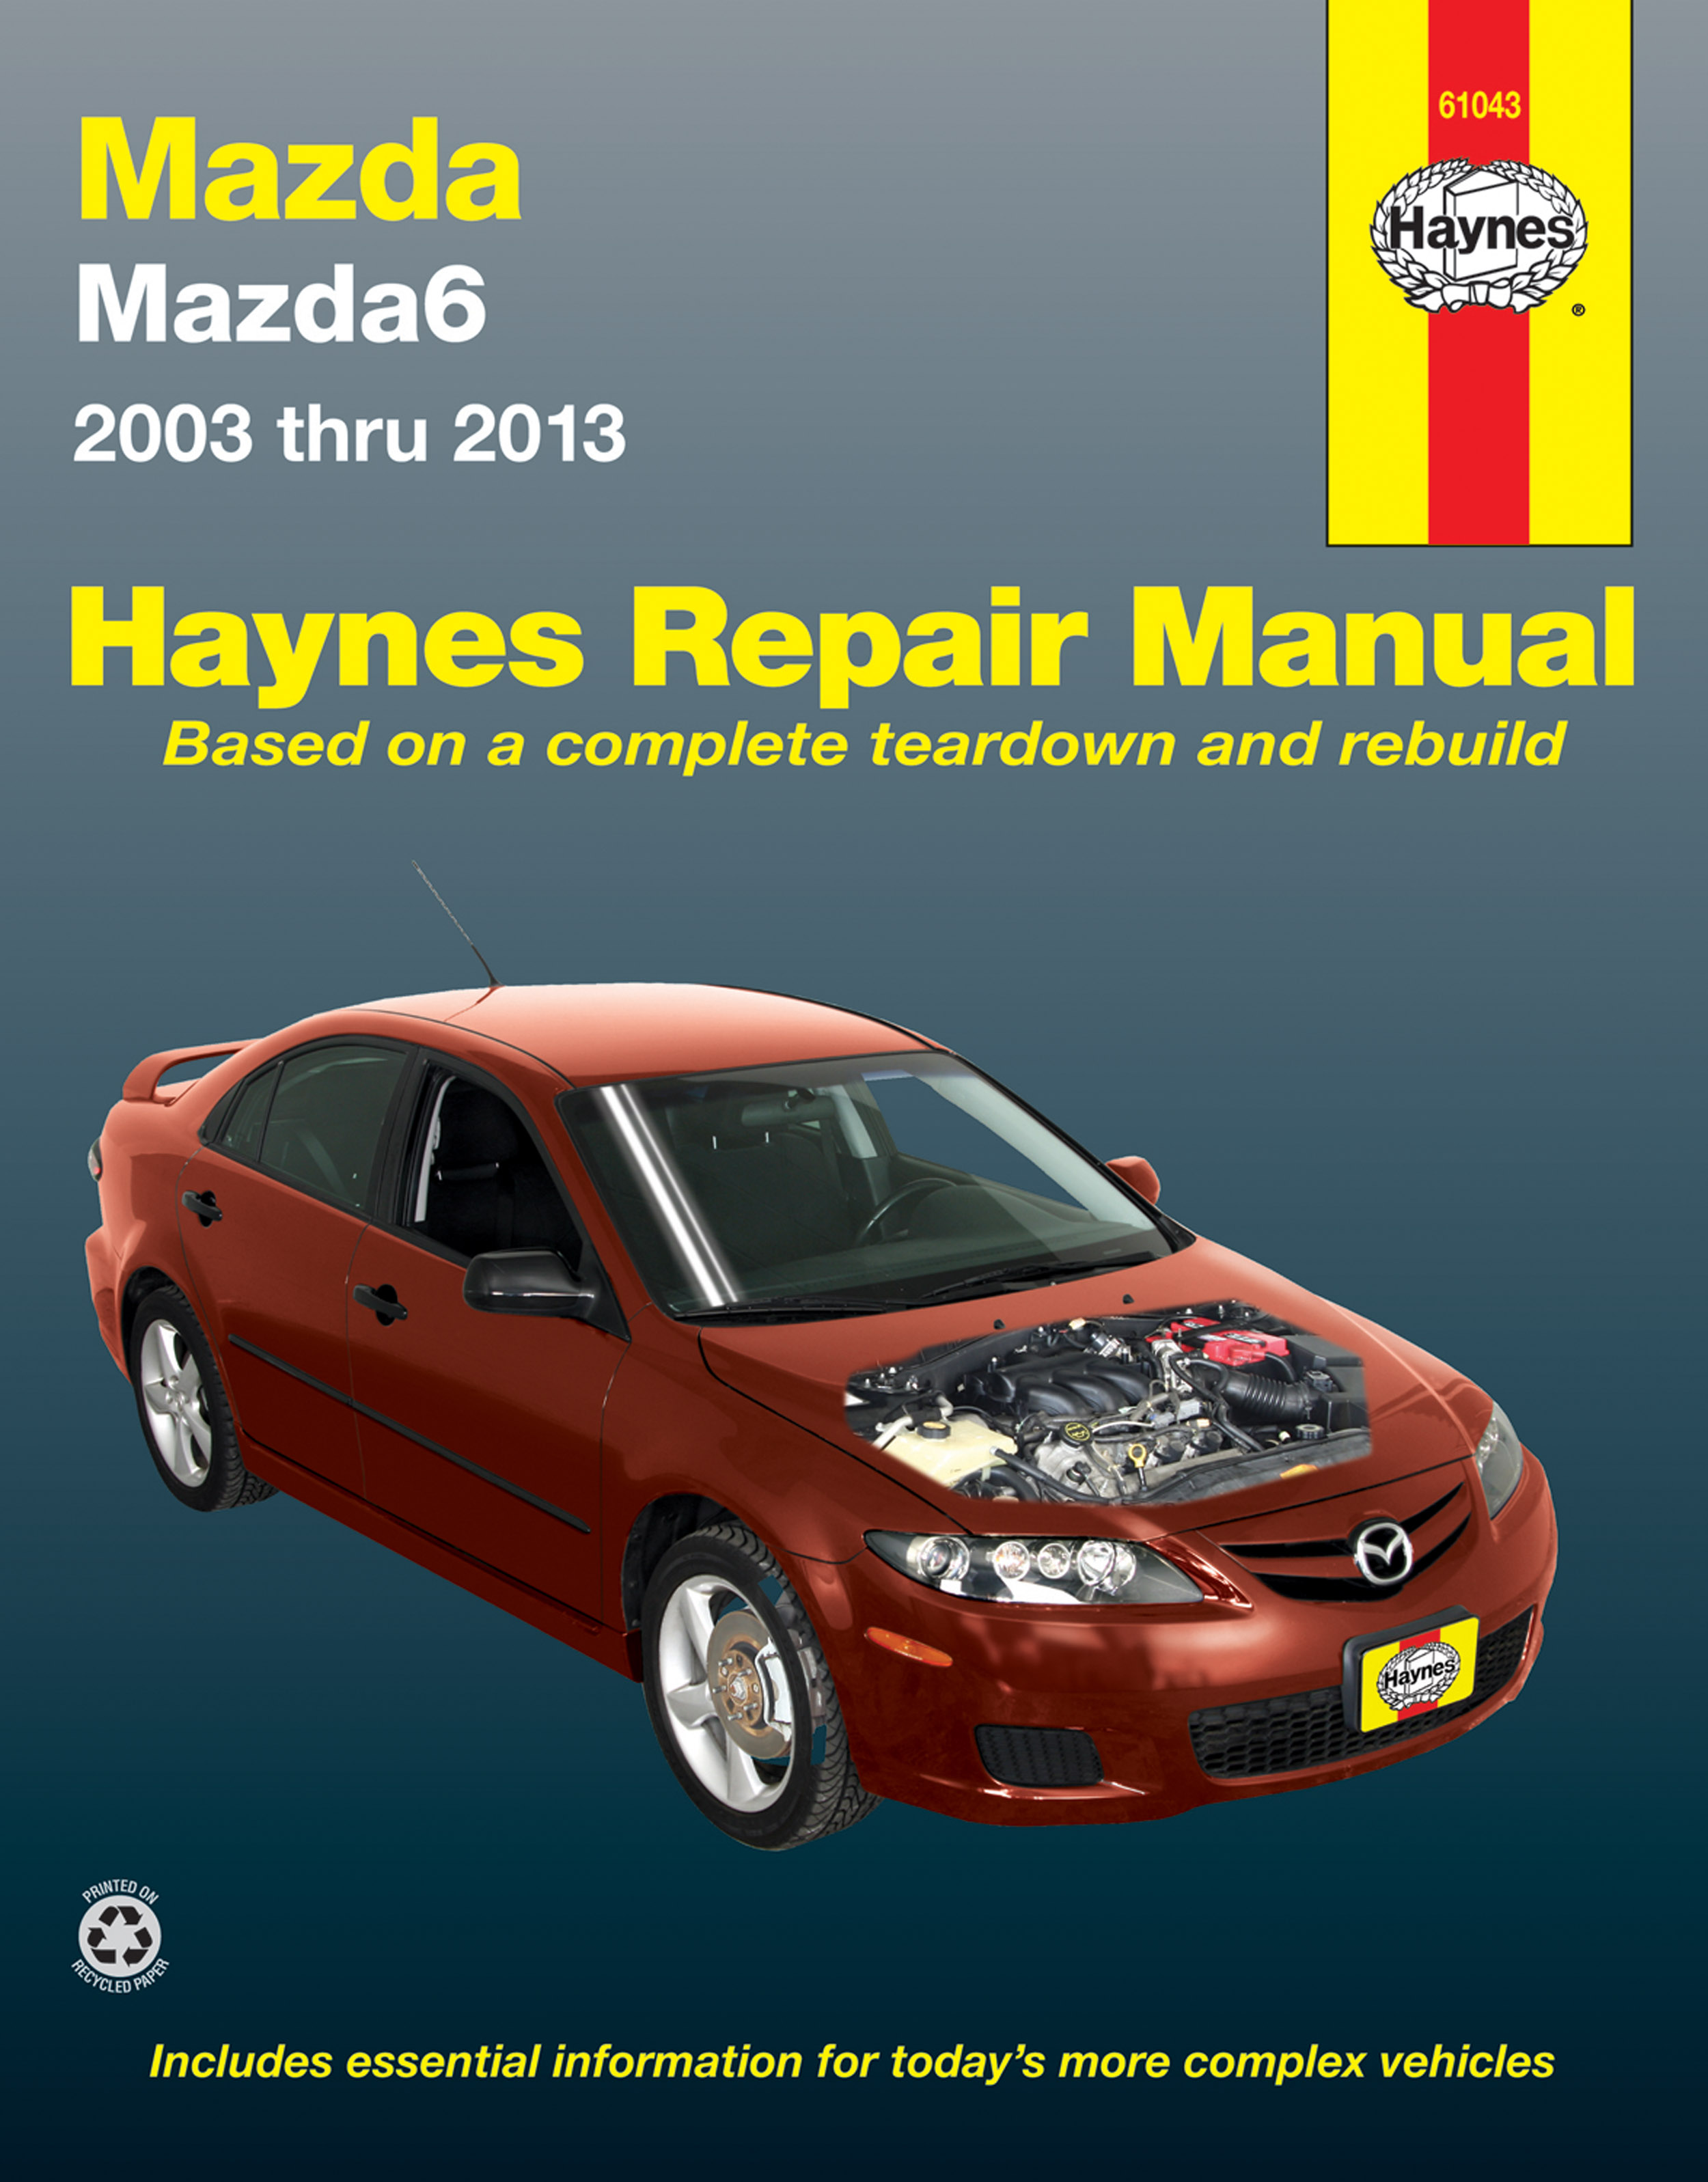 6 Haynes Manuals 2005 Mazda Electrical Wiring Diagram Printed Manual Enlarge Mazda6